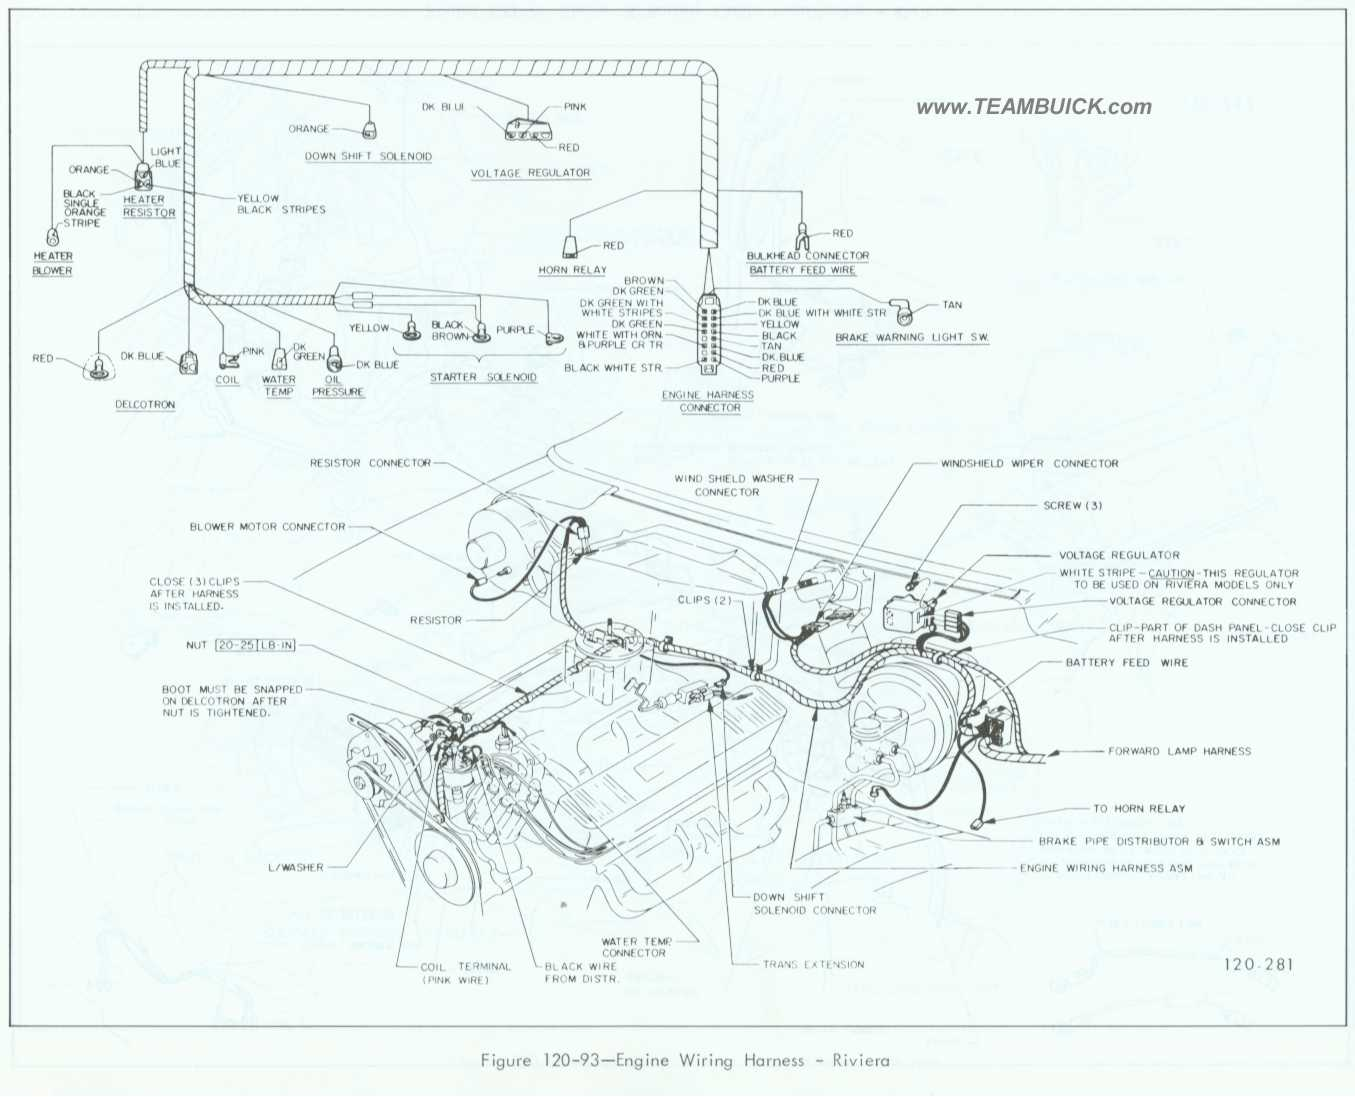 1971 Vw Super Beetle Wiring Diagram Further 1971 Vw Beetle Horn